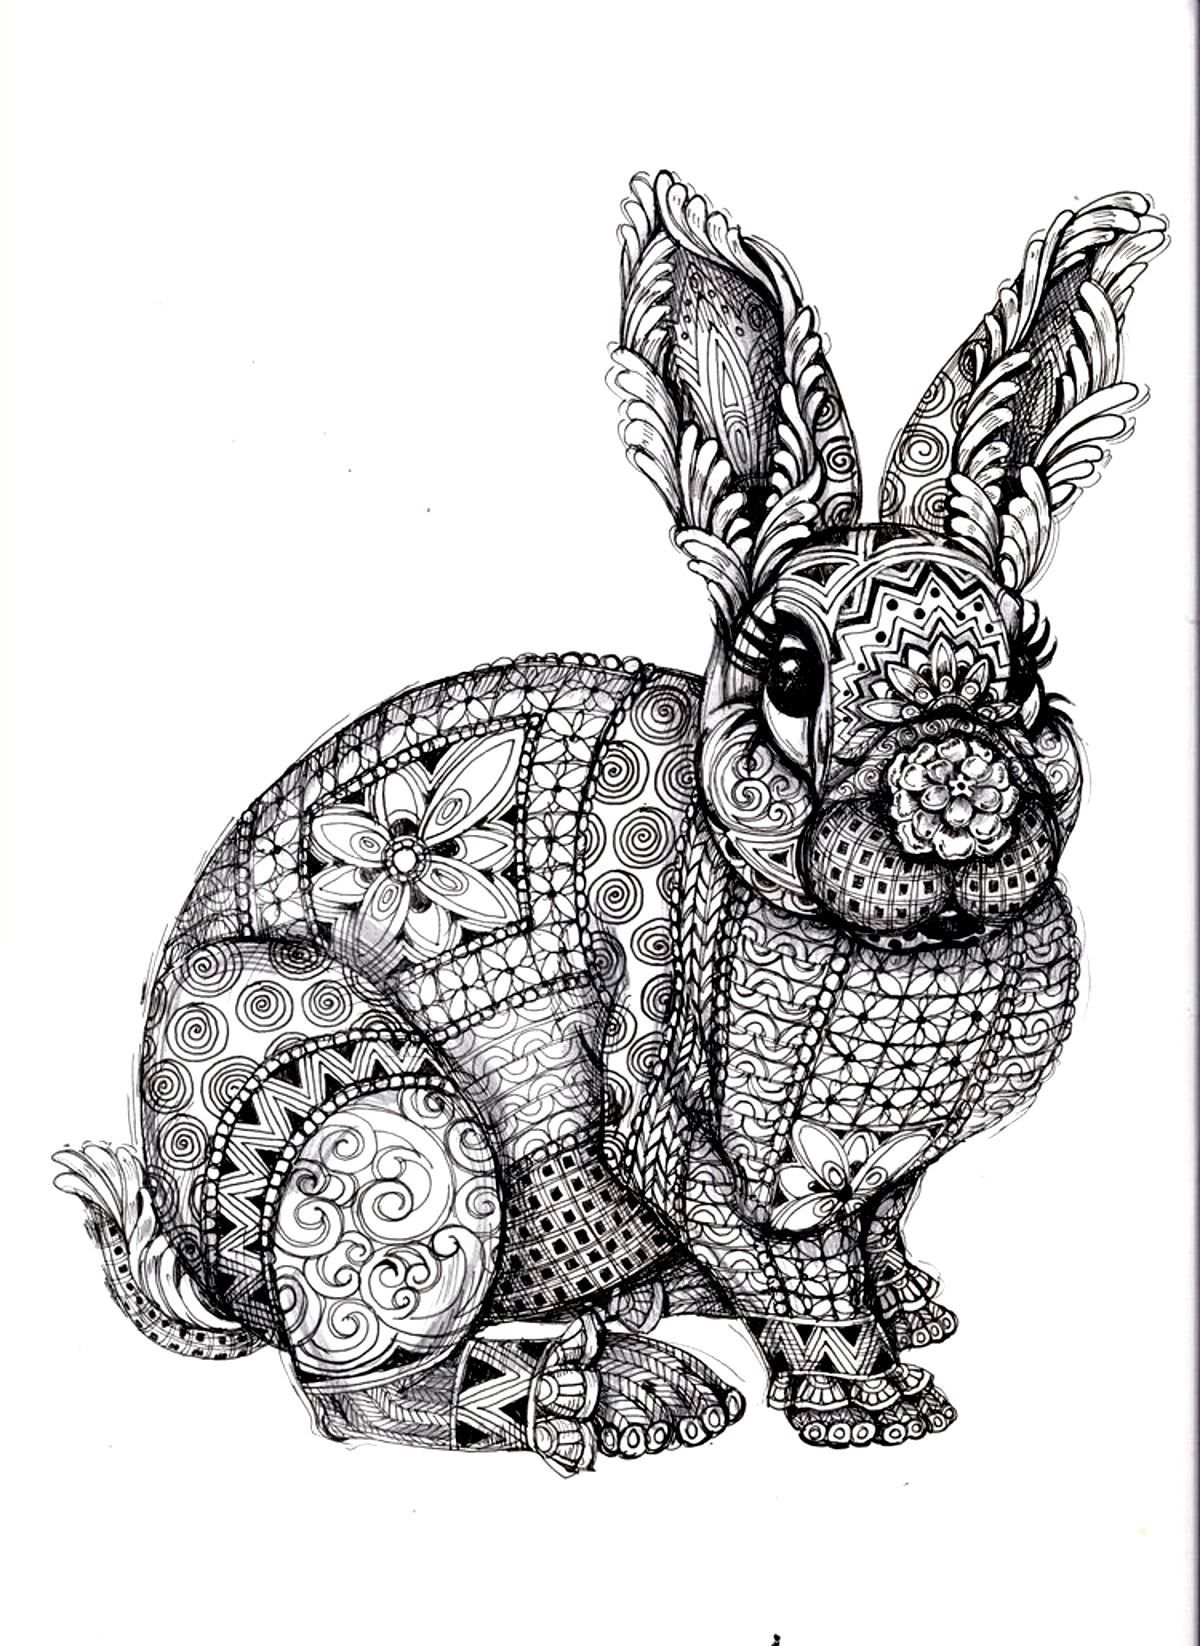 Difficult Rabbit Adult Coloring Page Free Online Printable Pages Sheets For Kids Get The Latest Images